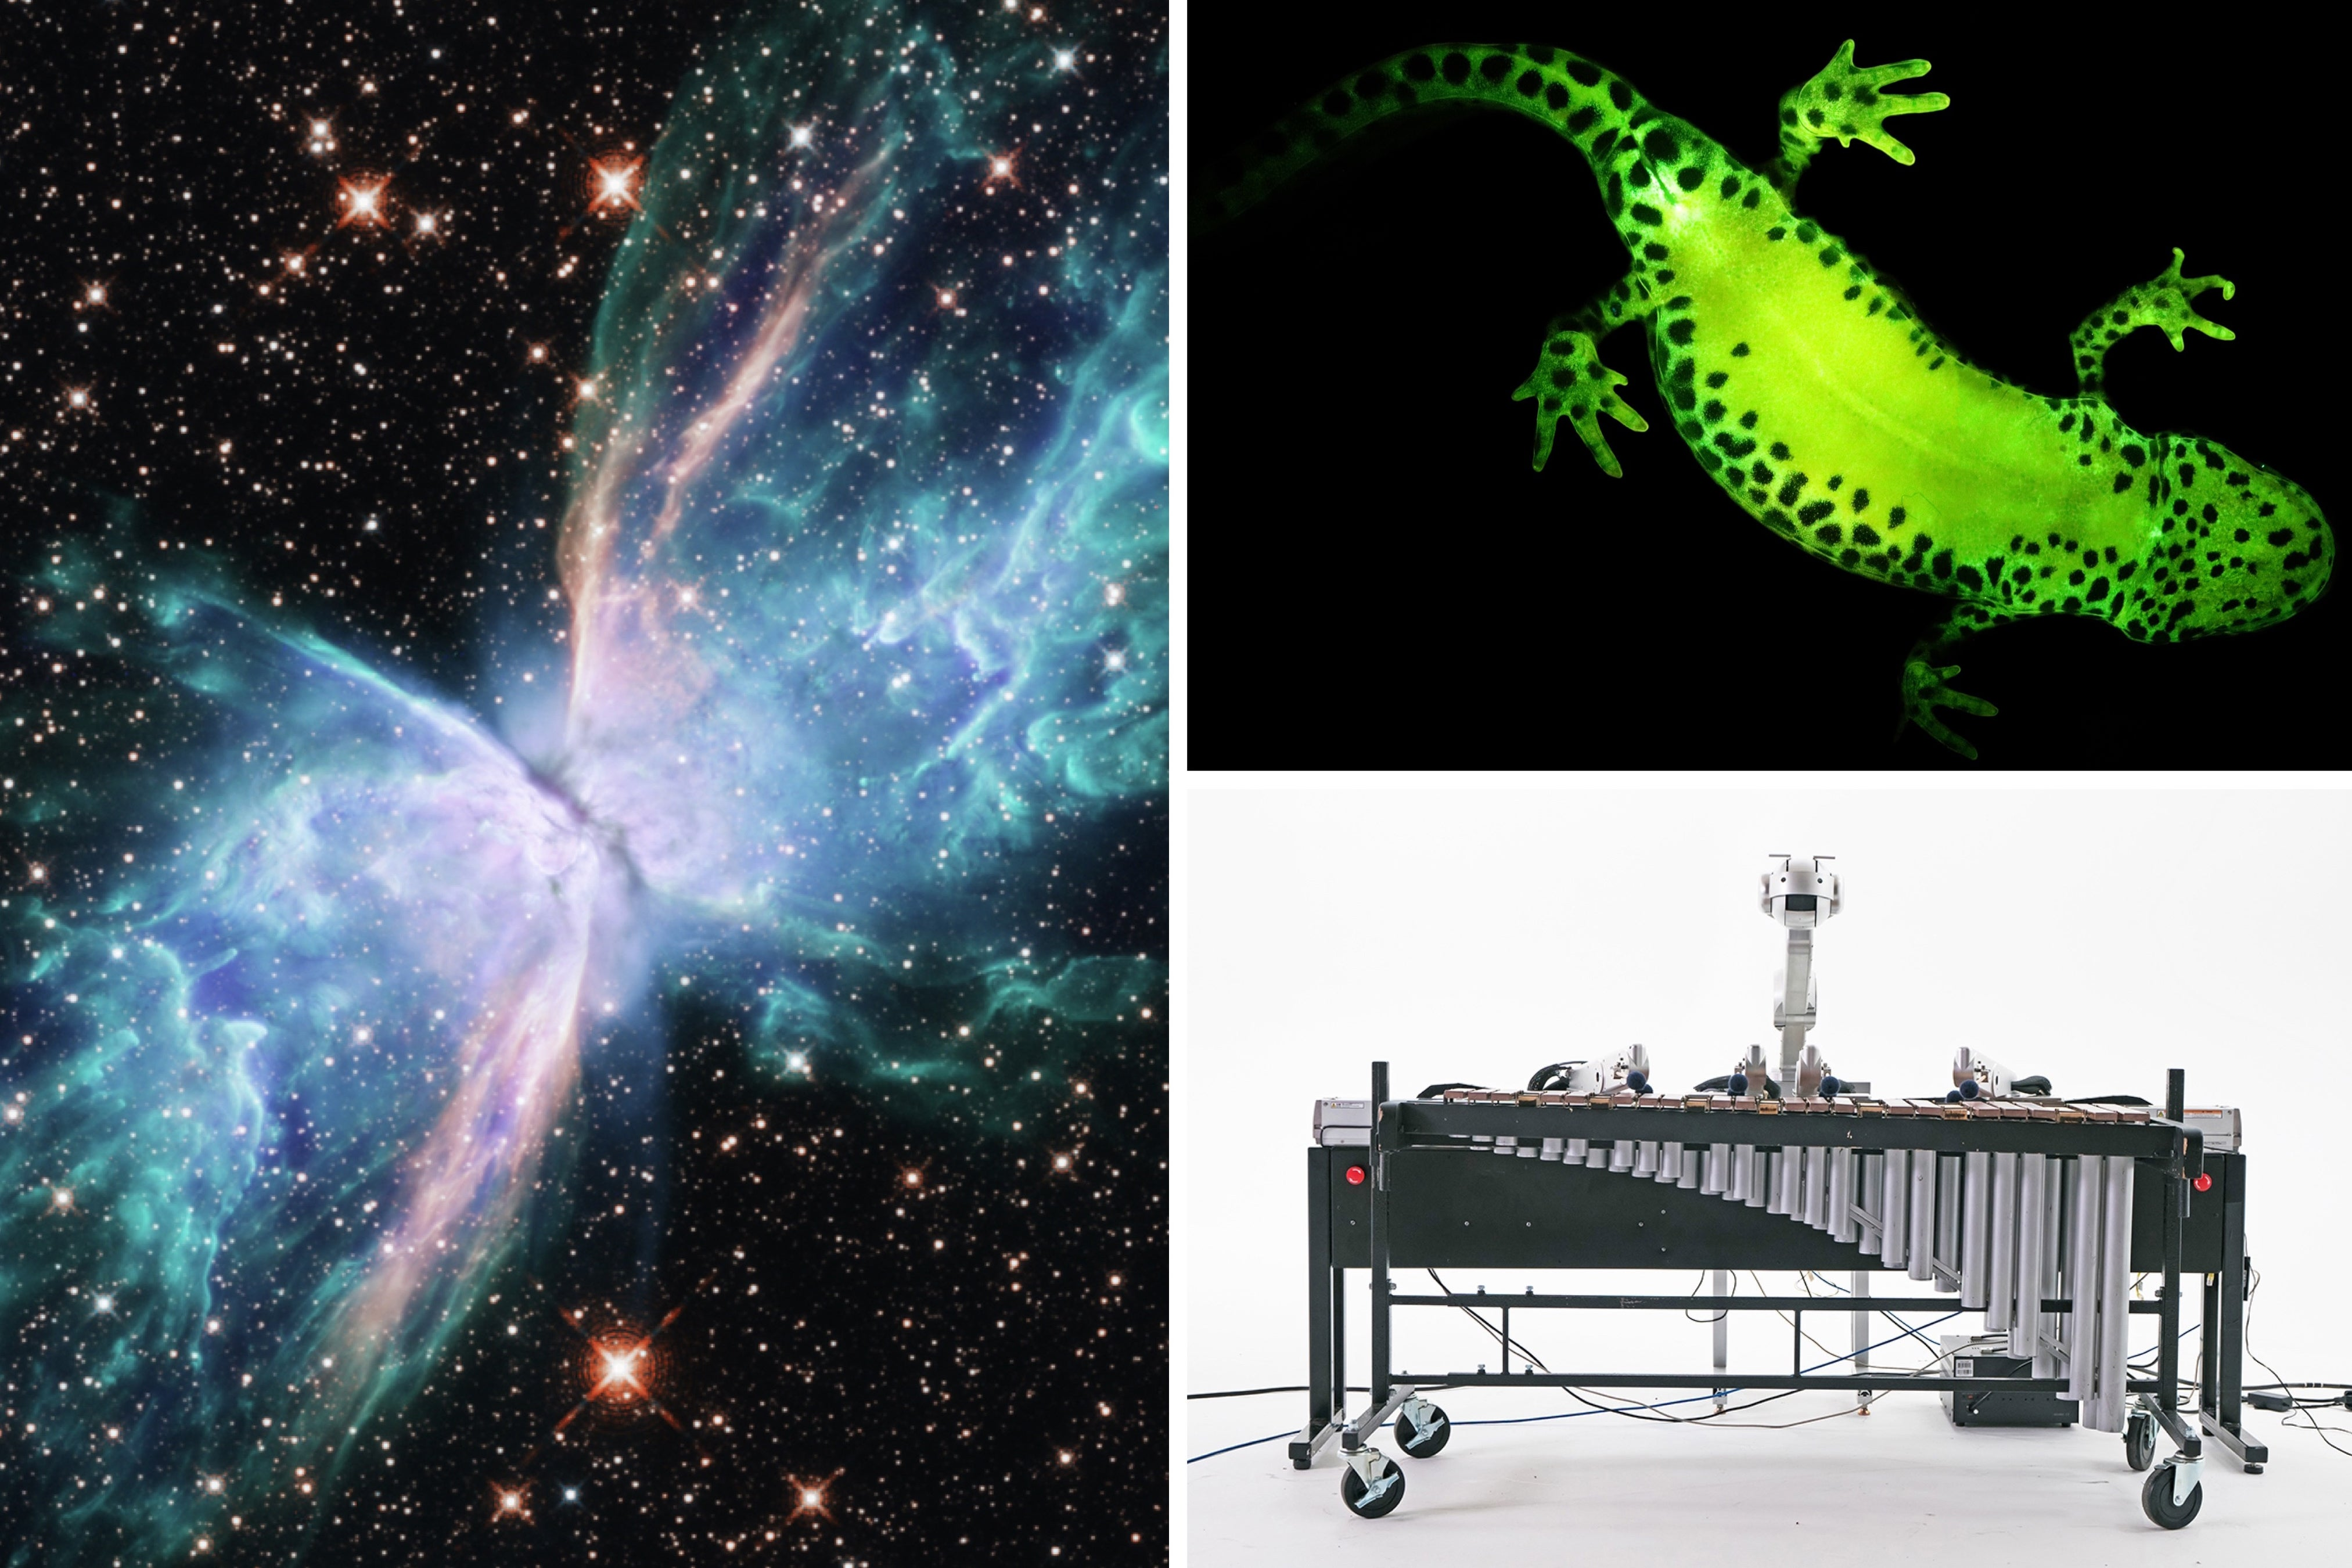 From Rapping Robots to Glowing Frogs: Our Favorite Fun Stories of 2020